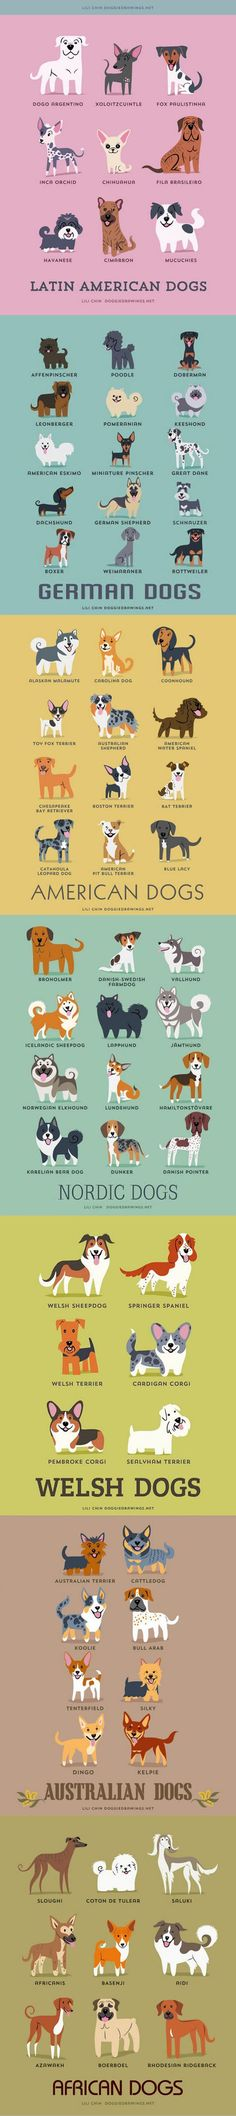 Dog Breeds. I Love Them All! Part 3 | #Animals #Breed #Dogs #World